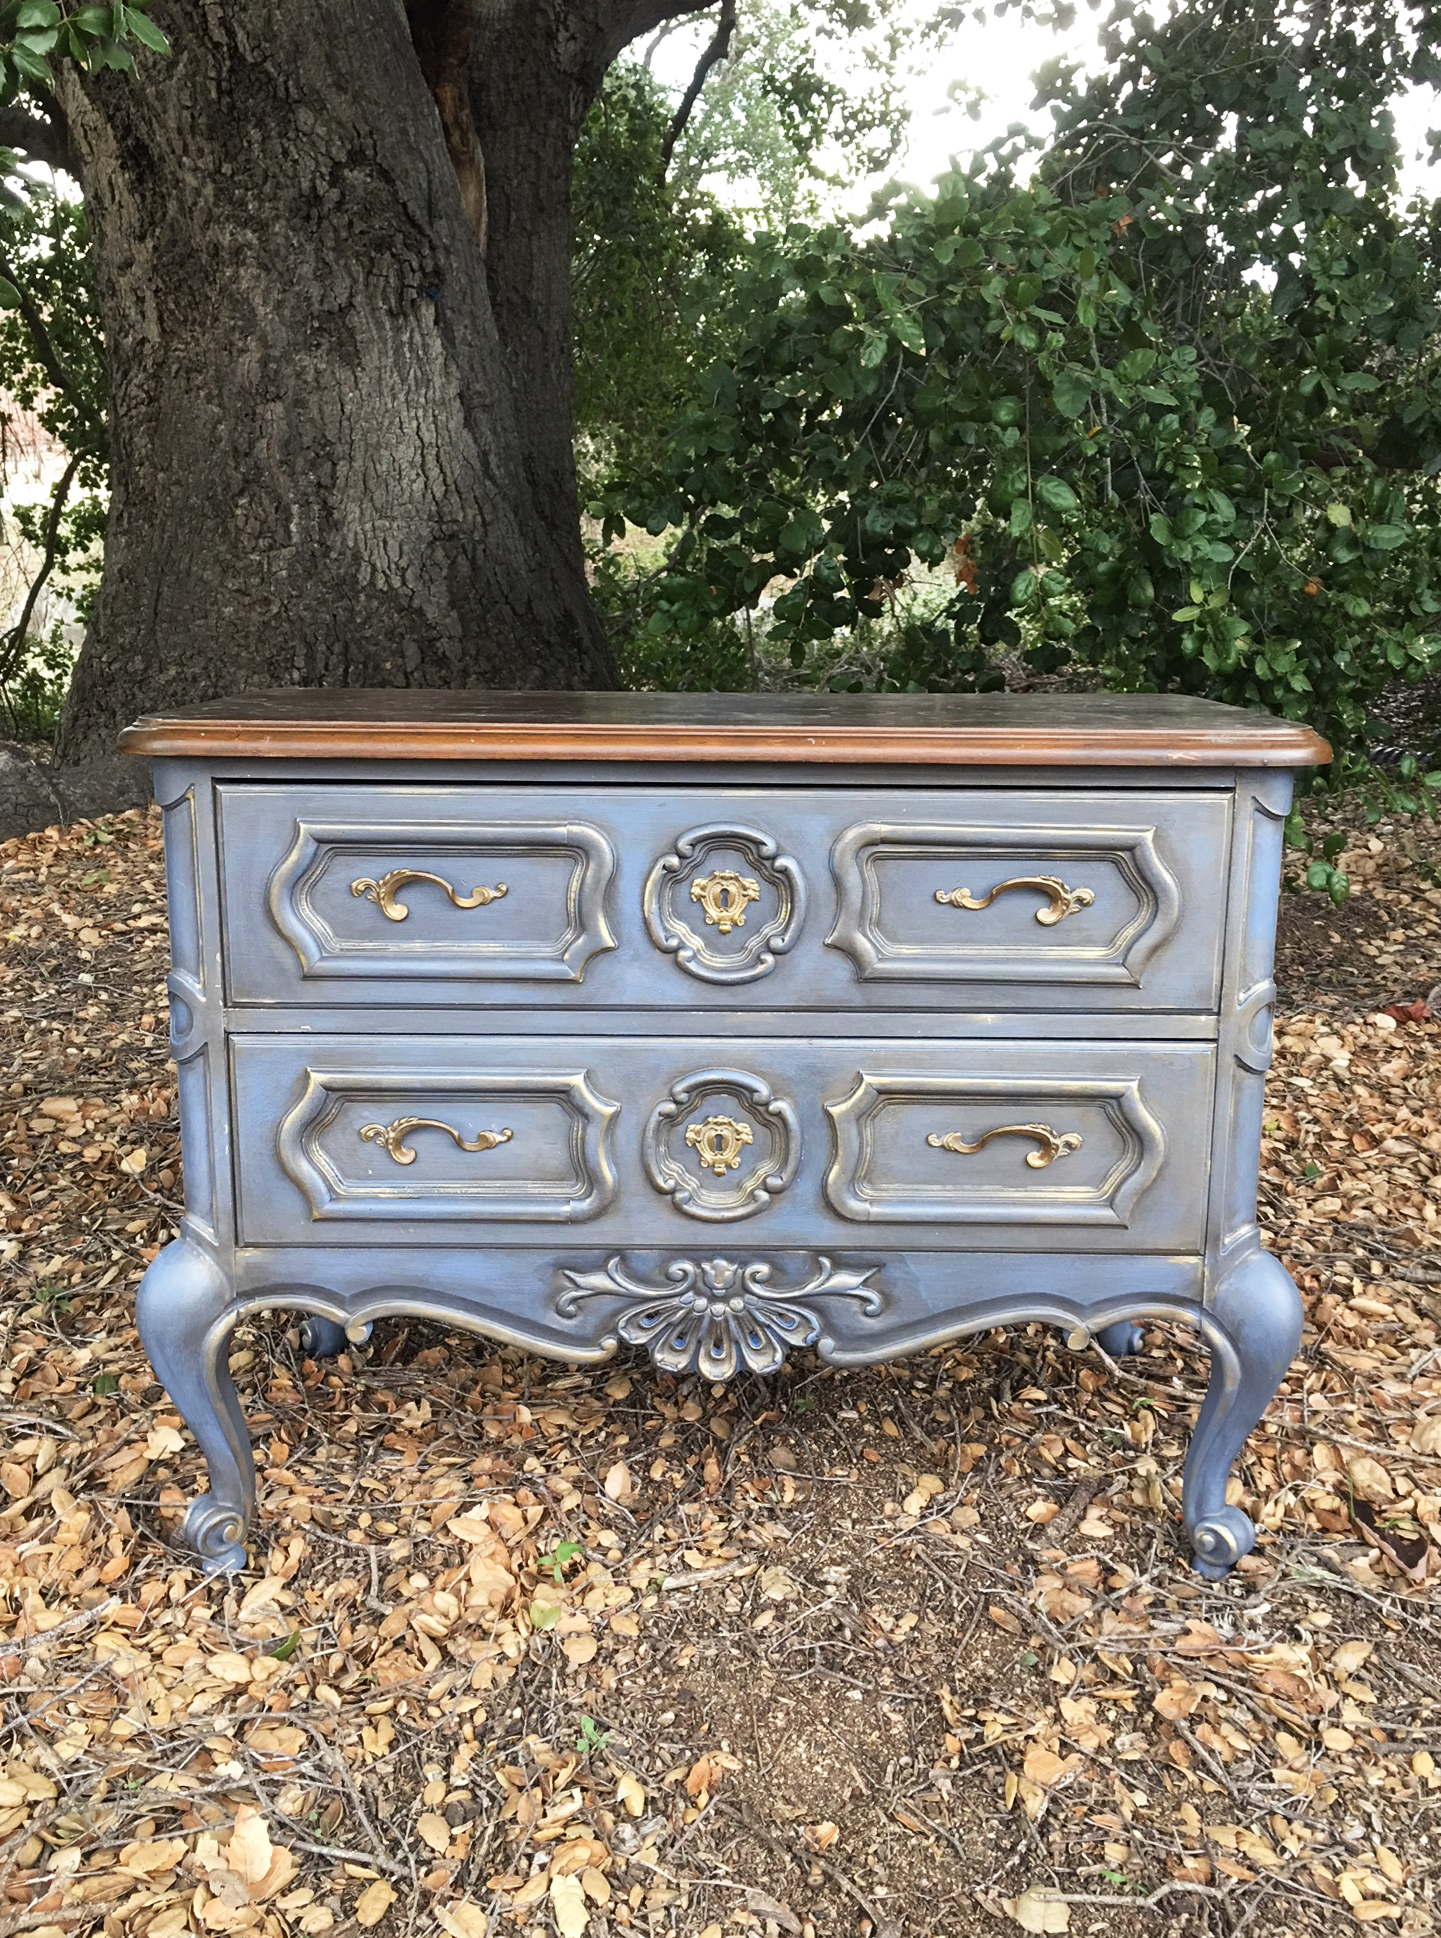 Have you seen the Painted Lady? This beautiful piece was found in Arizona and brought back in the truck to our workshop in Temecula for a much needed makeover. Unfortunately, we went to town on it and forgot to take a before pic, but that's OK....this post is about a fun technique we think you will love and we did take photos of the process-phew!